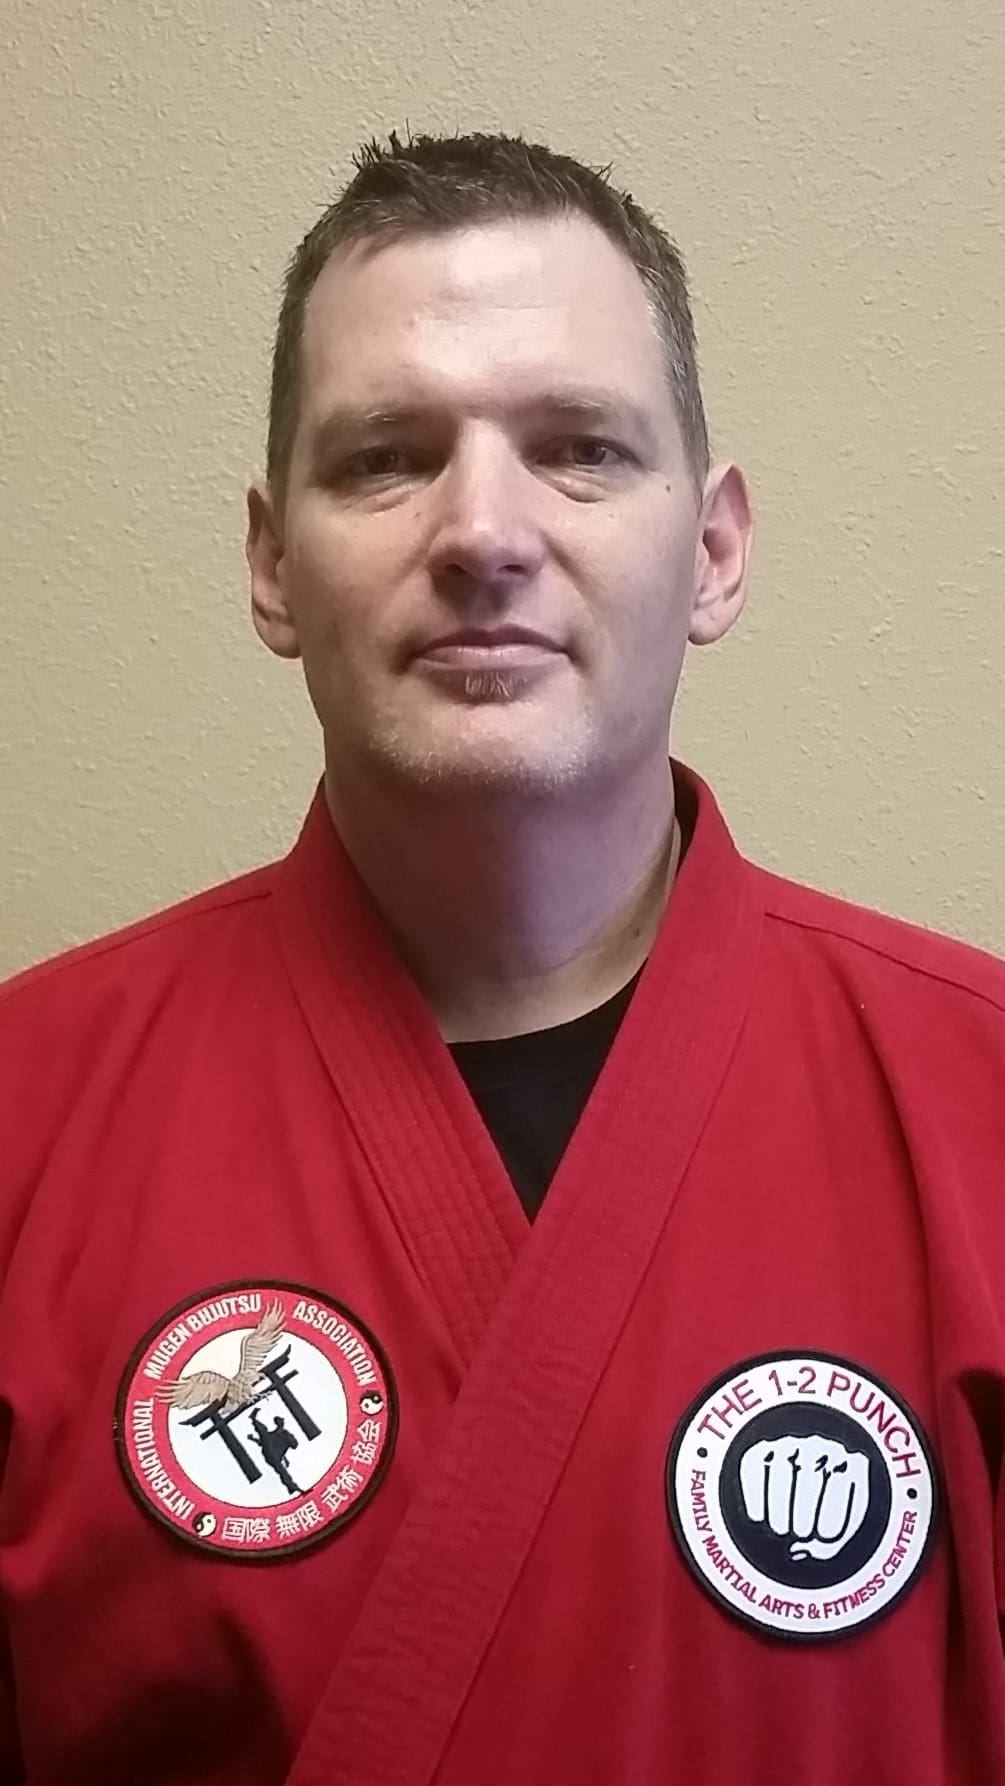 Scott Goers in Lake Forest - The 1-2 Punch Martial Arts